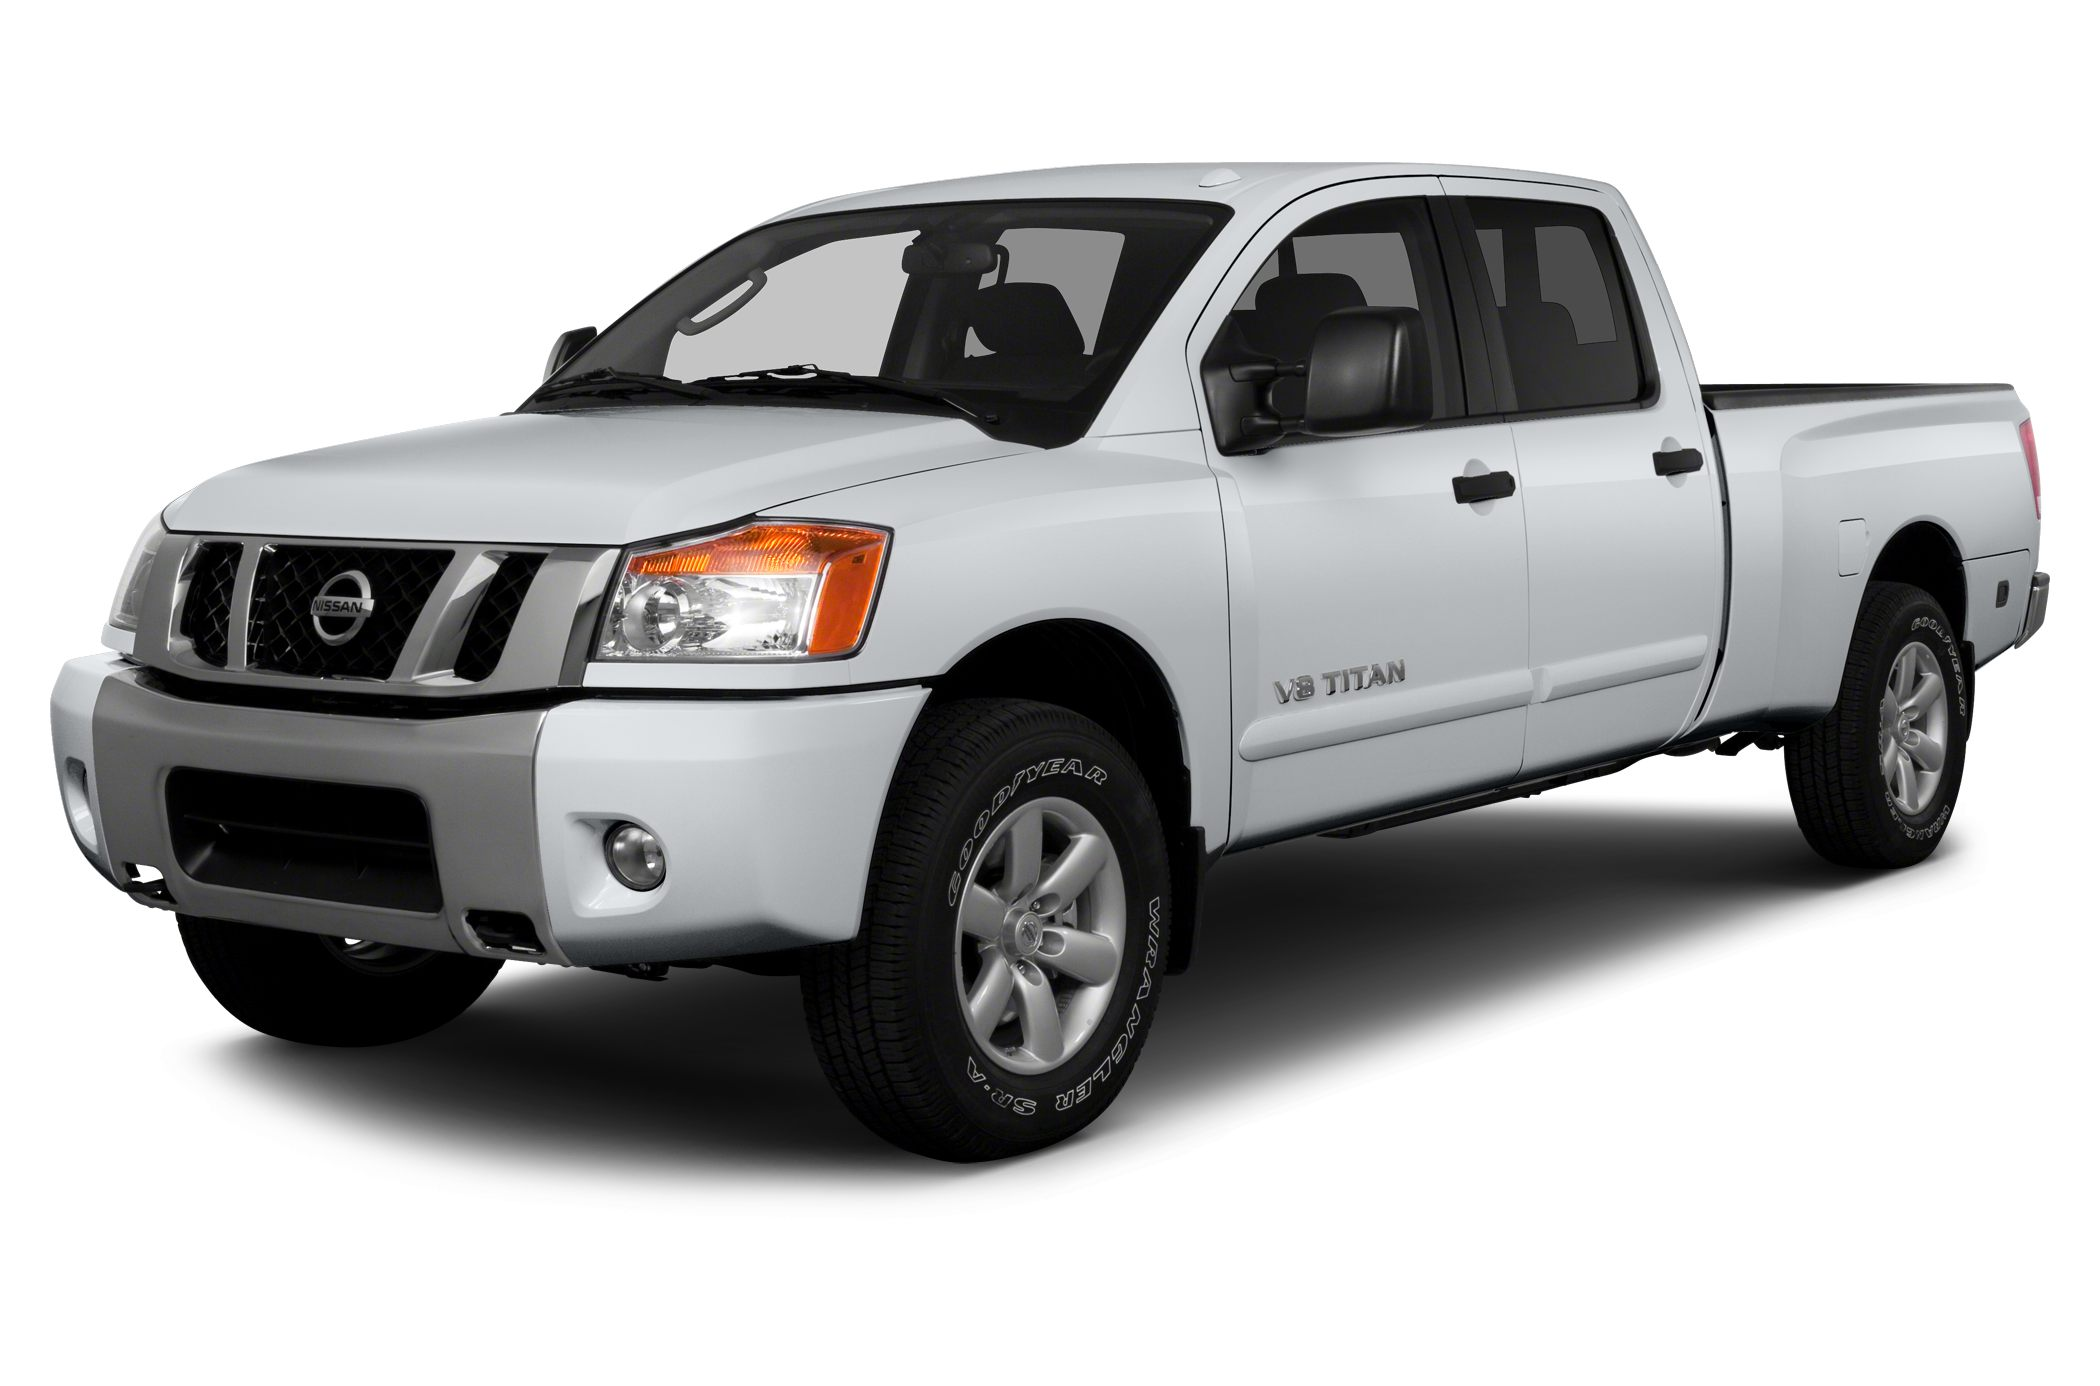 2013 Nissan Titan Pro 4x 4x4 Crew Cab Swb Specs And Prices